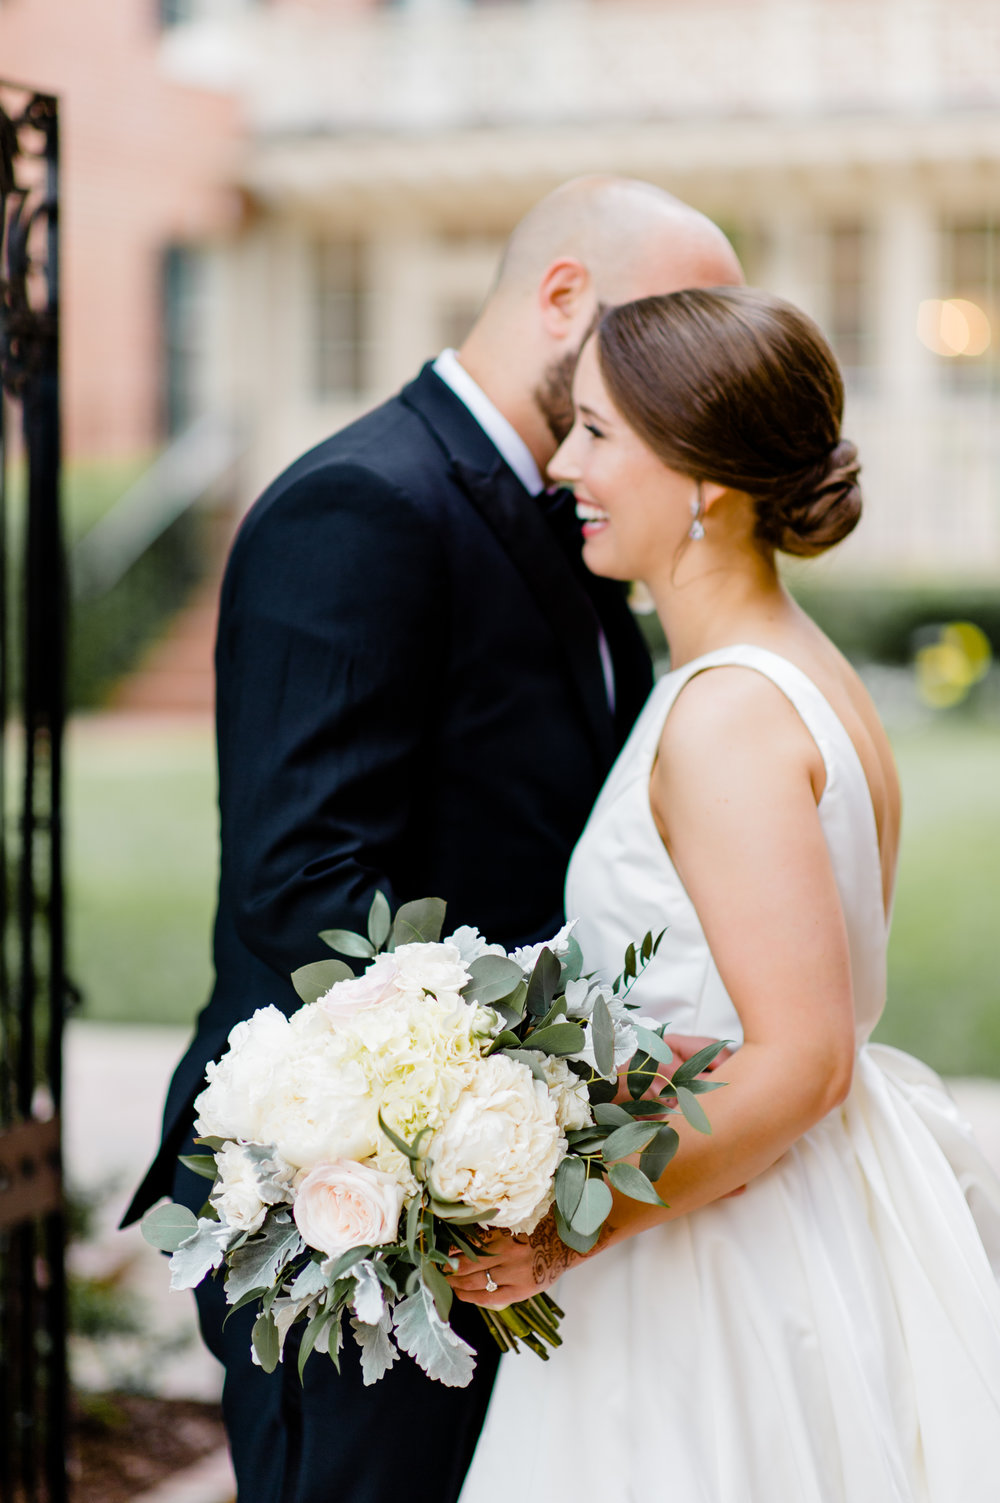 Koul_Wedding_CarolineLimaPhotography_2018_105.jpg